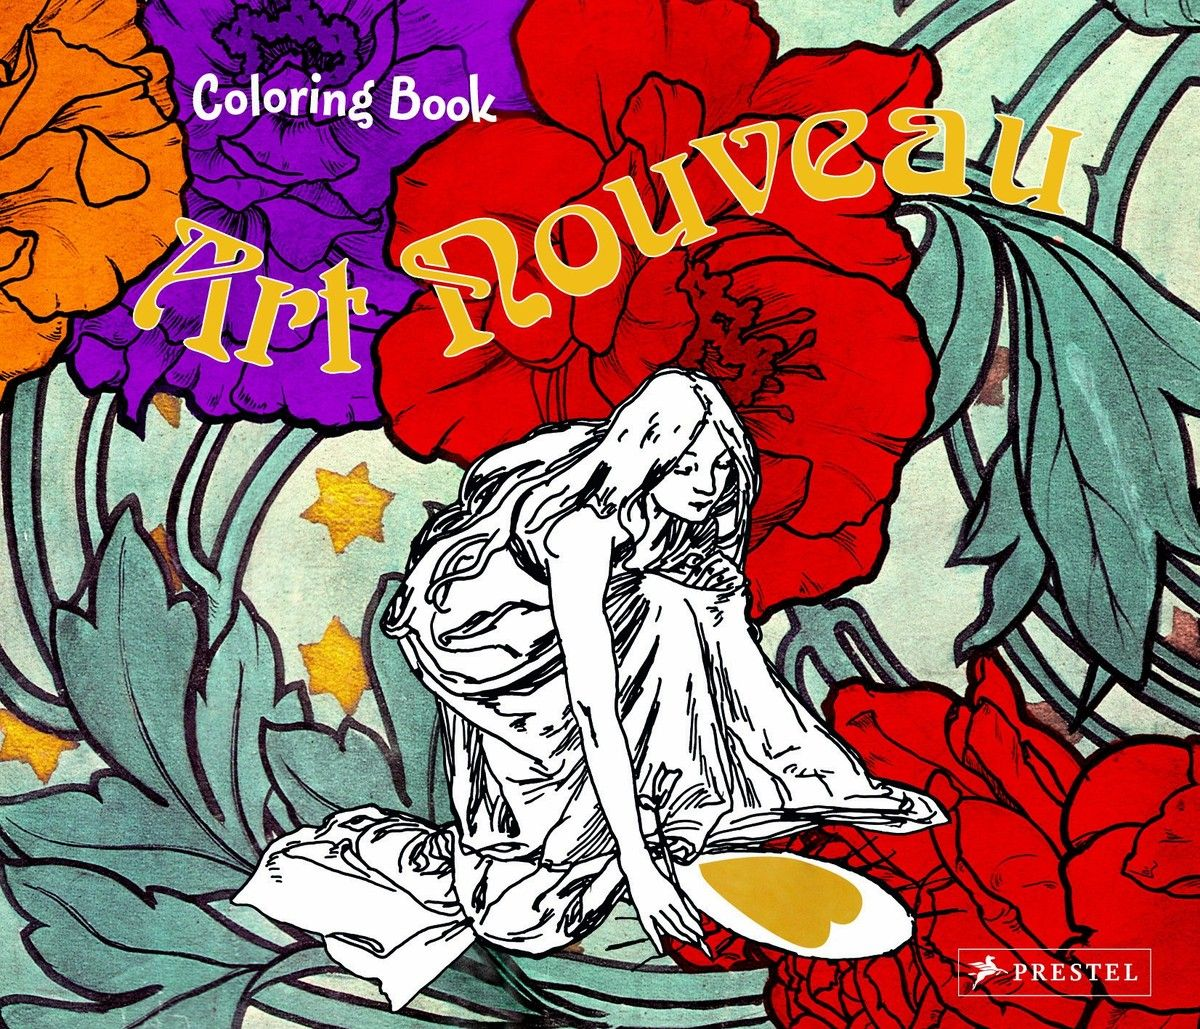 Colouring Book Art Nouveau по 369.00 руб от изд. Prestel